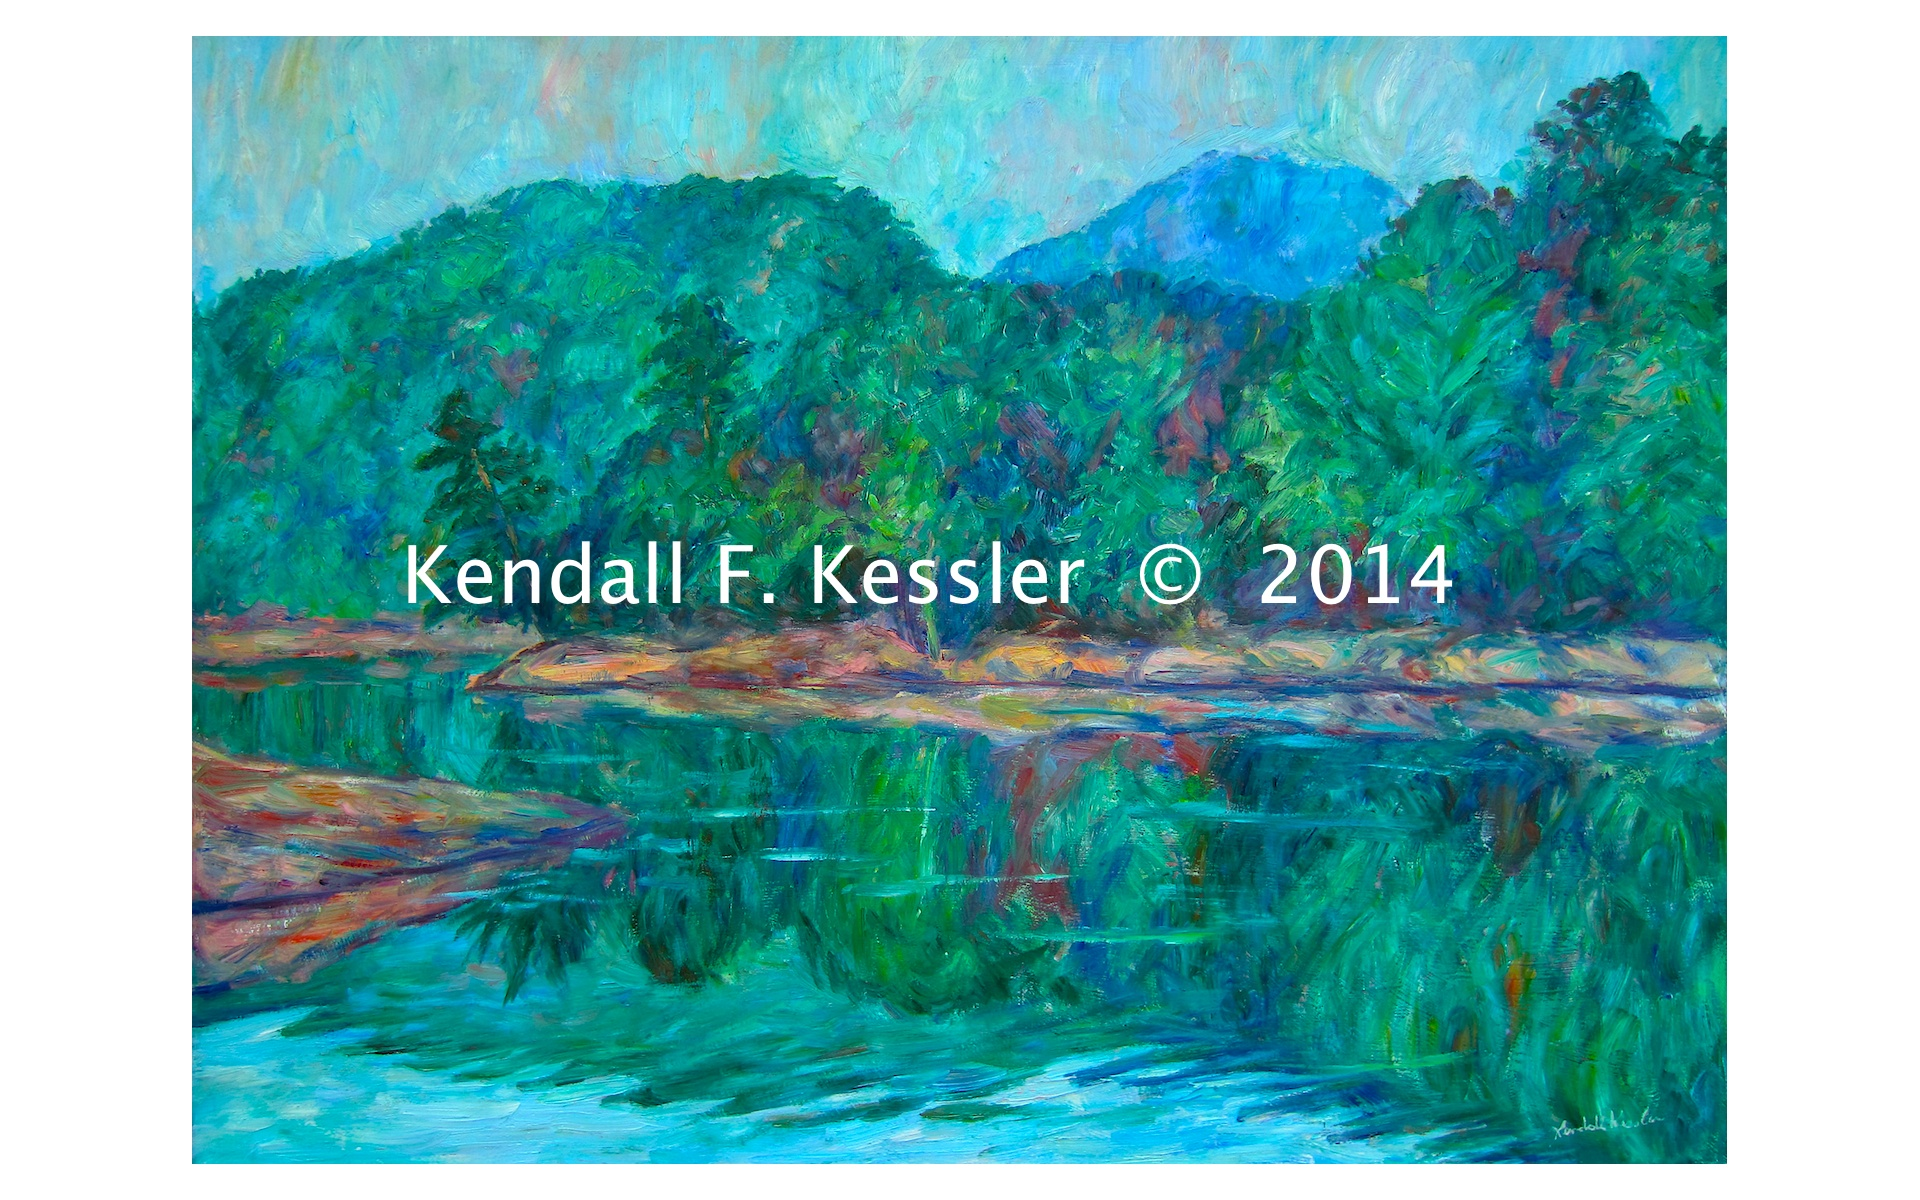 Kendall kessler lives to paint beautiful carvins cove for Carvins cove fishing